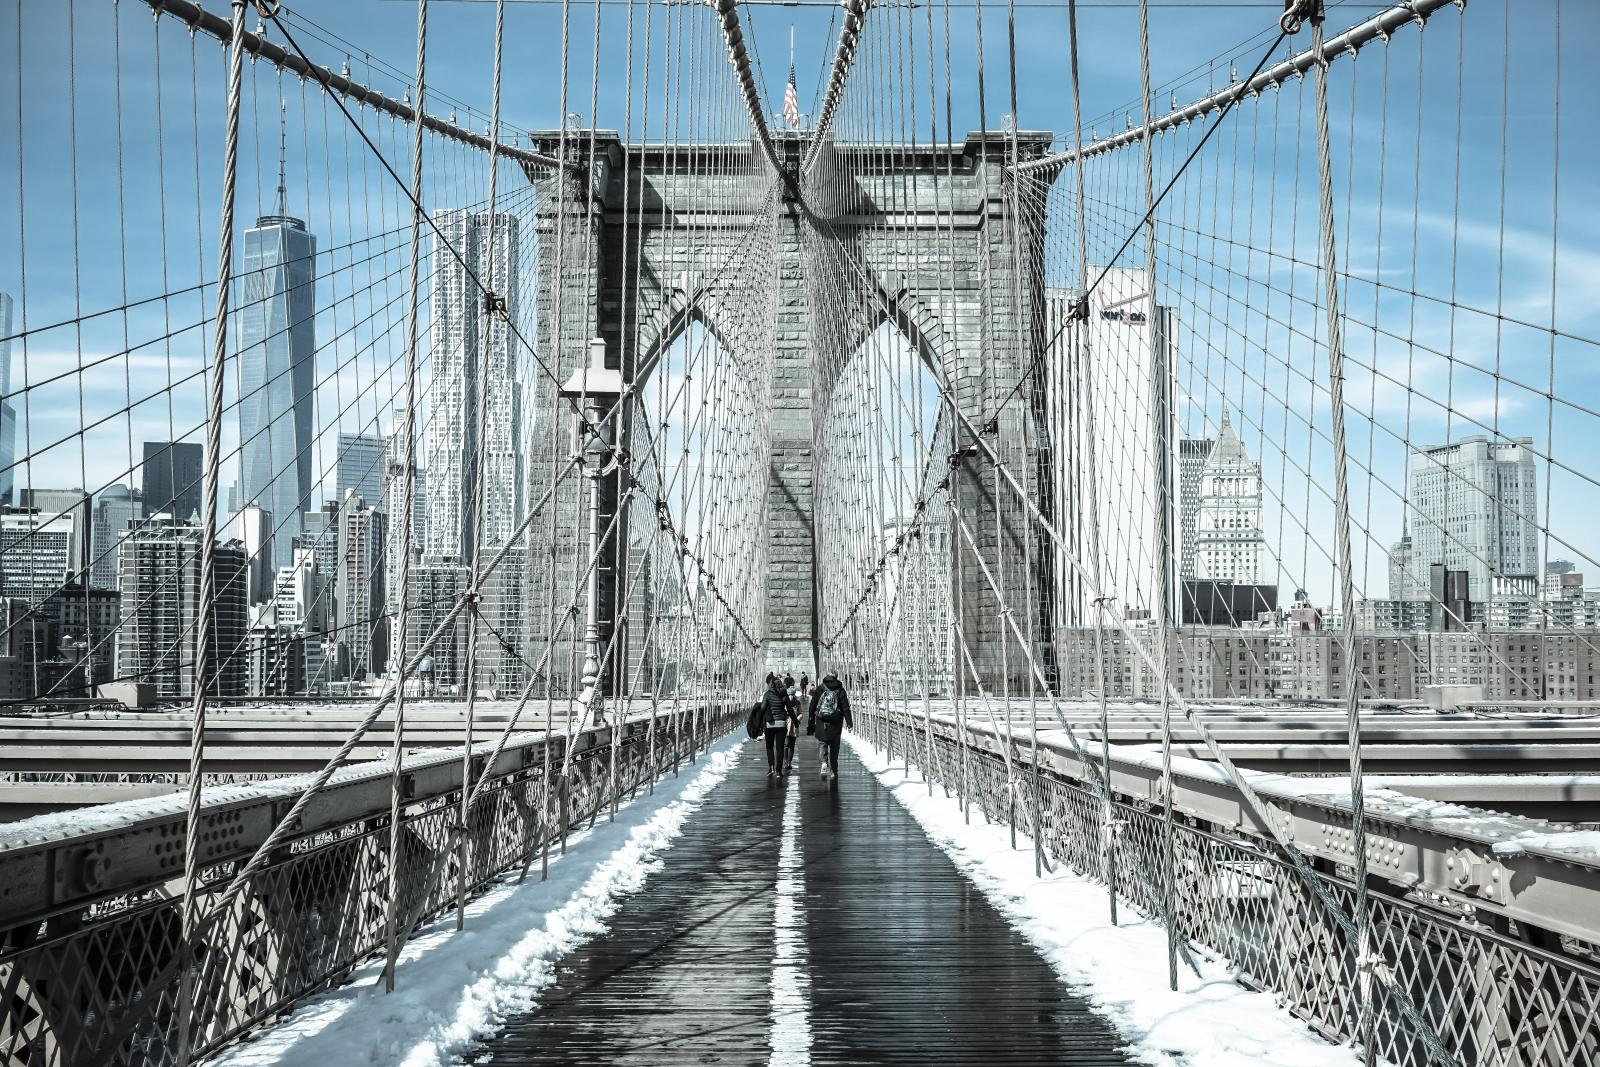 Winter in New York / Pedestrians cross snow-covered Brooklyn Bri